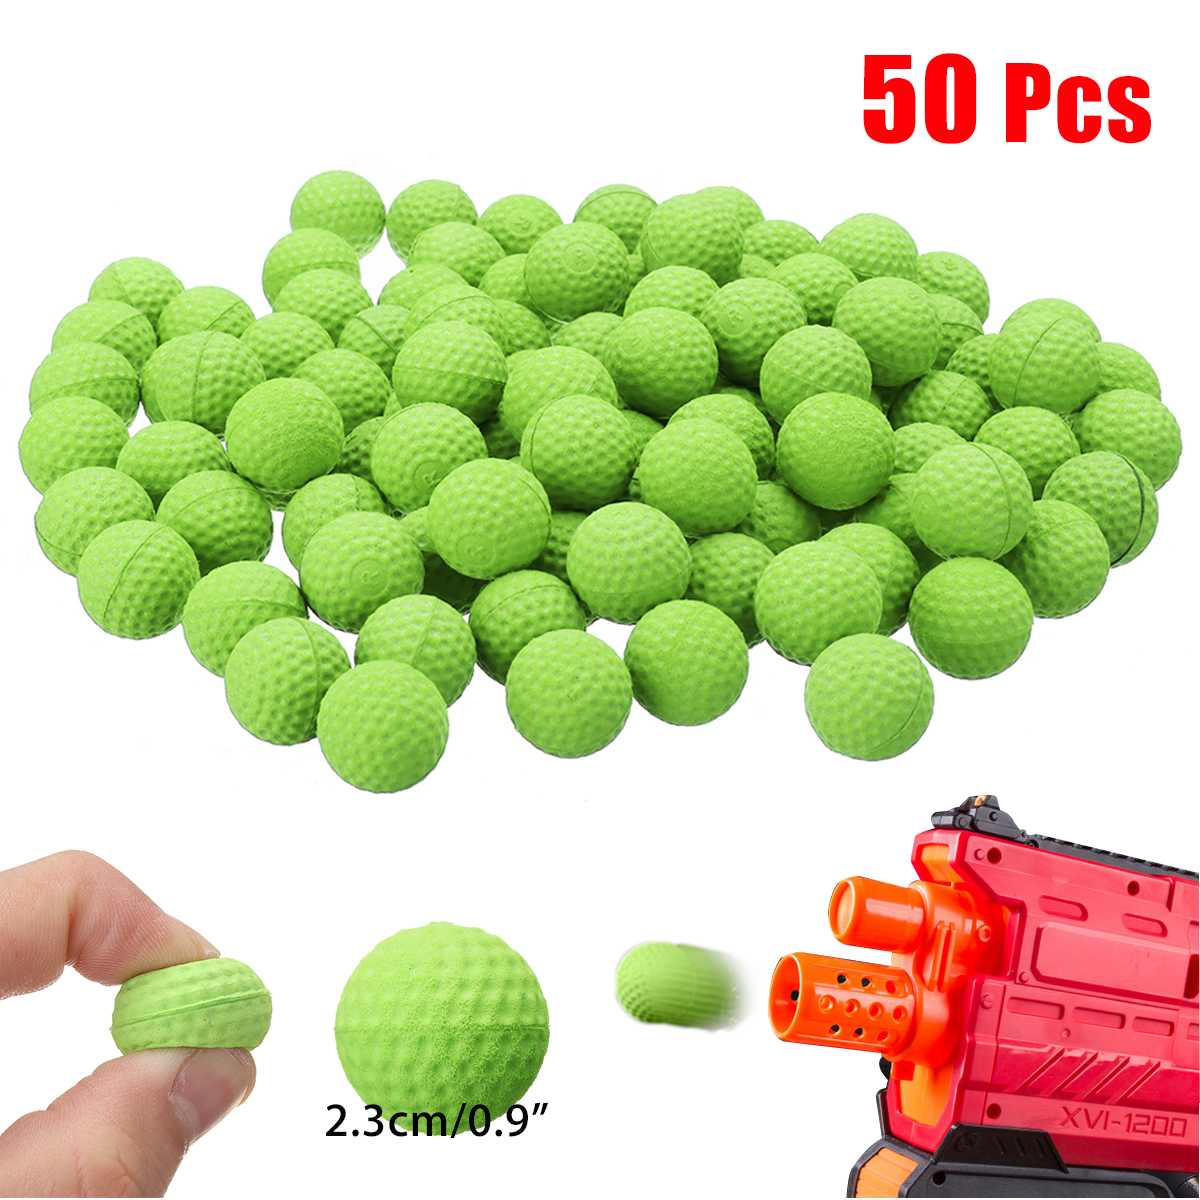 50Pcs Bullet Balls Rounds Compatible For Nerf Rival Apollo Toy Refill Outdoor Fun Sports Children Toy Guns Gift